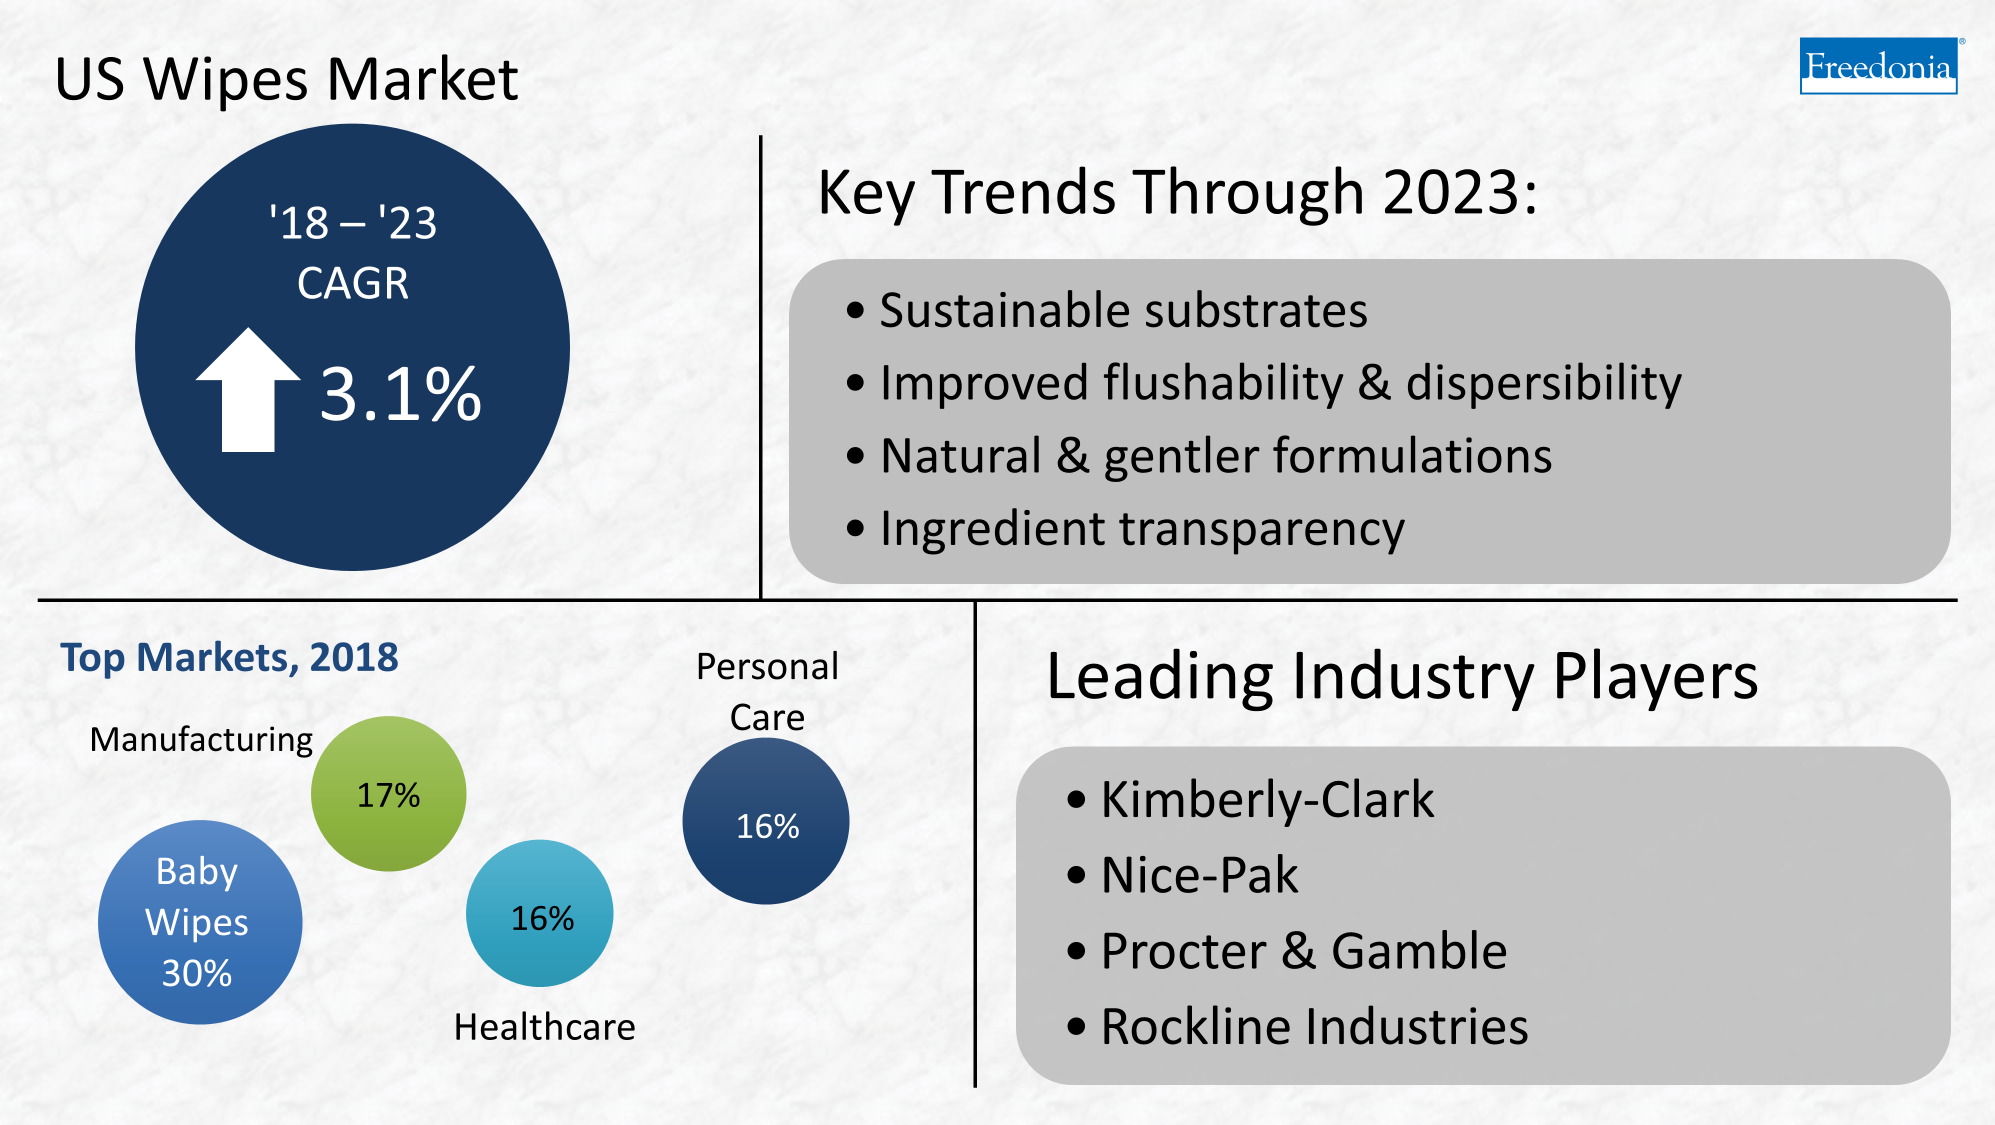 Trends in wipes market through 2023